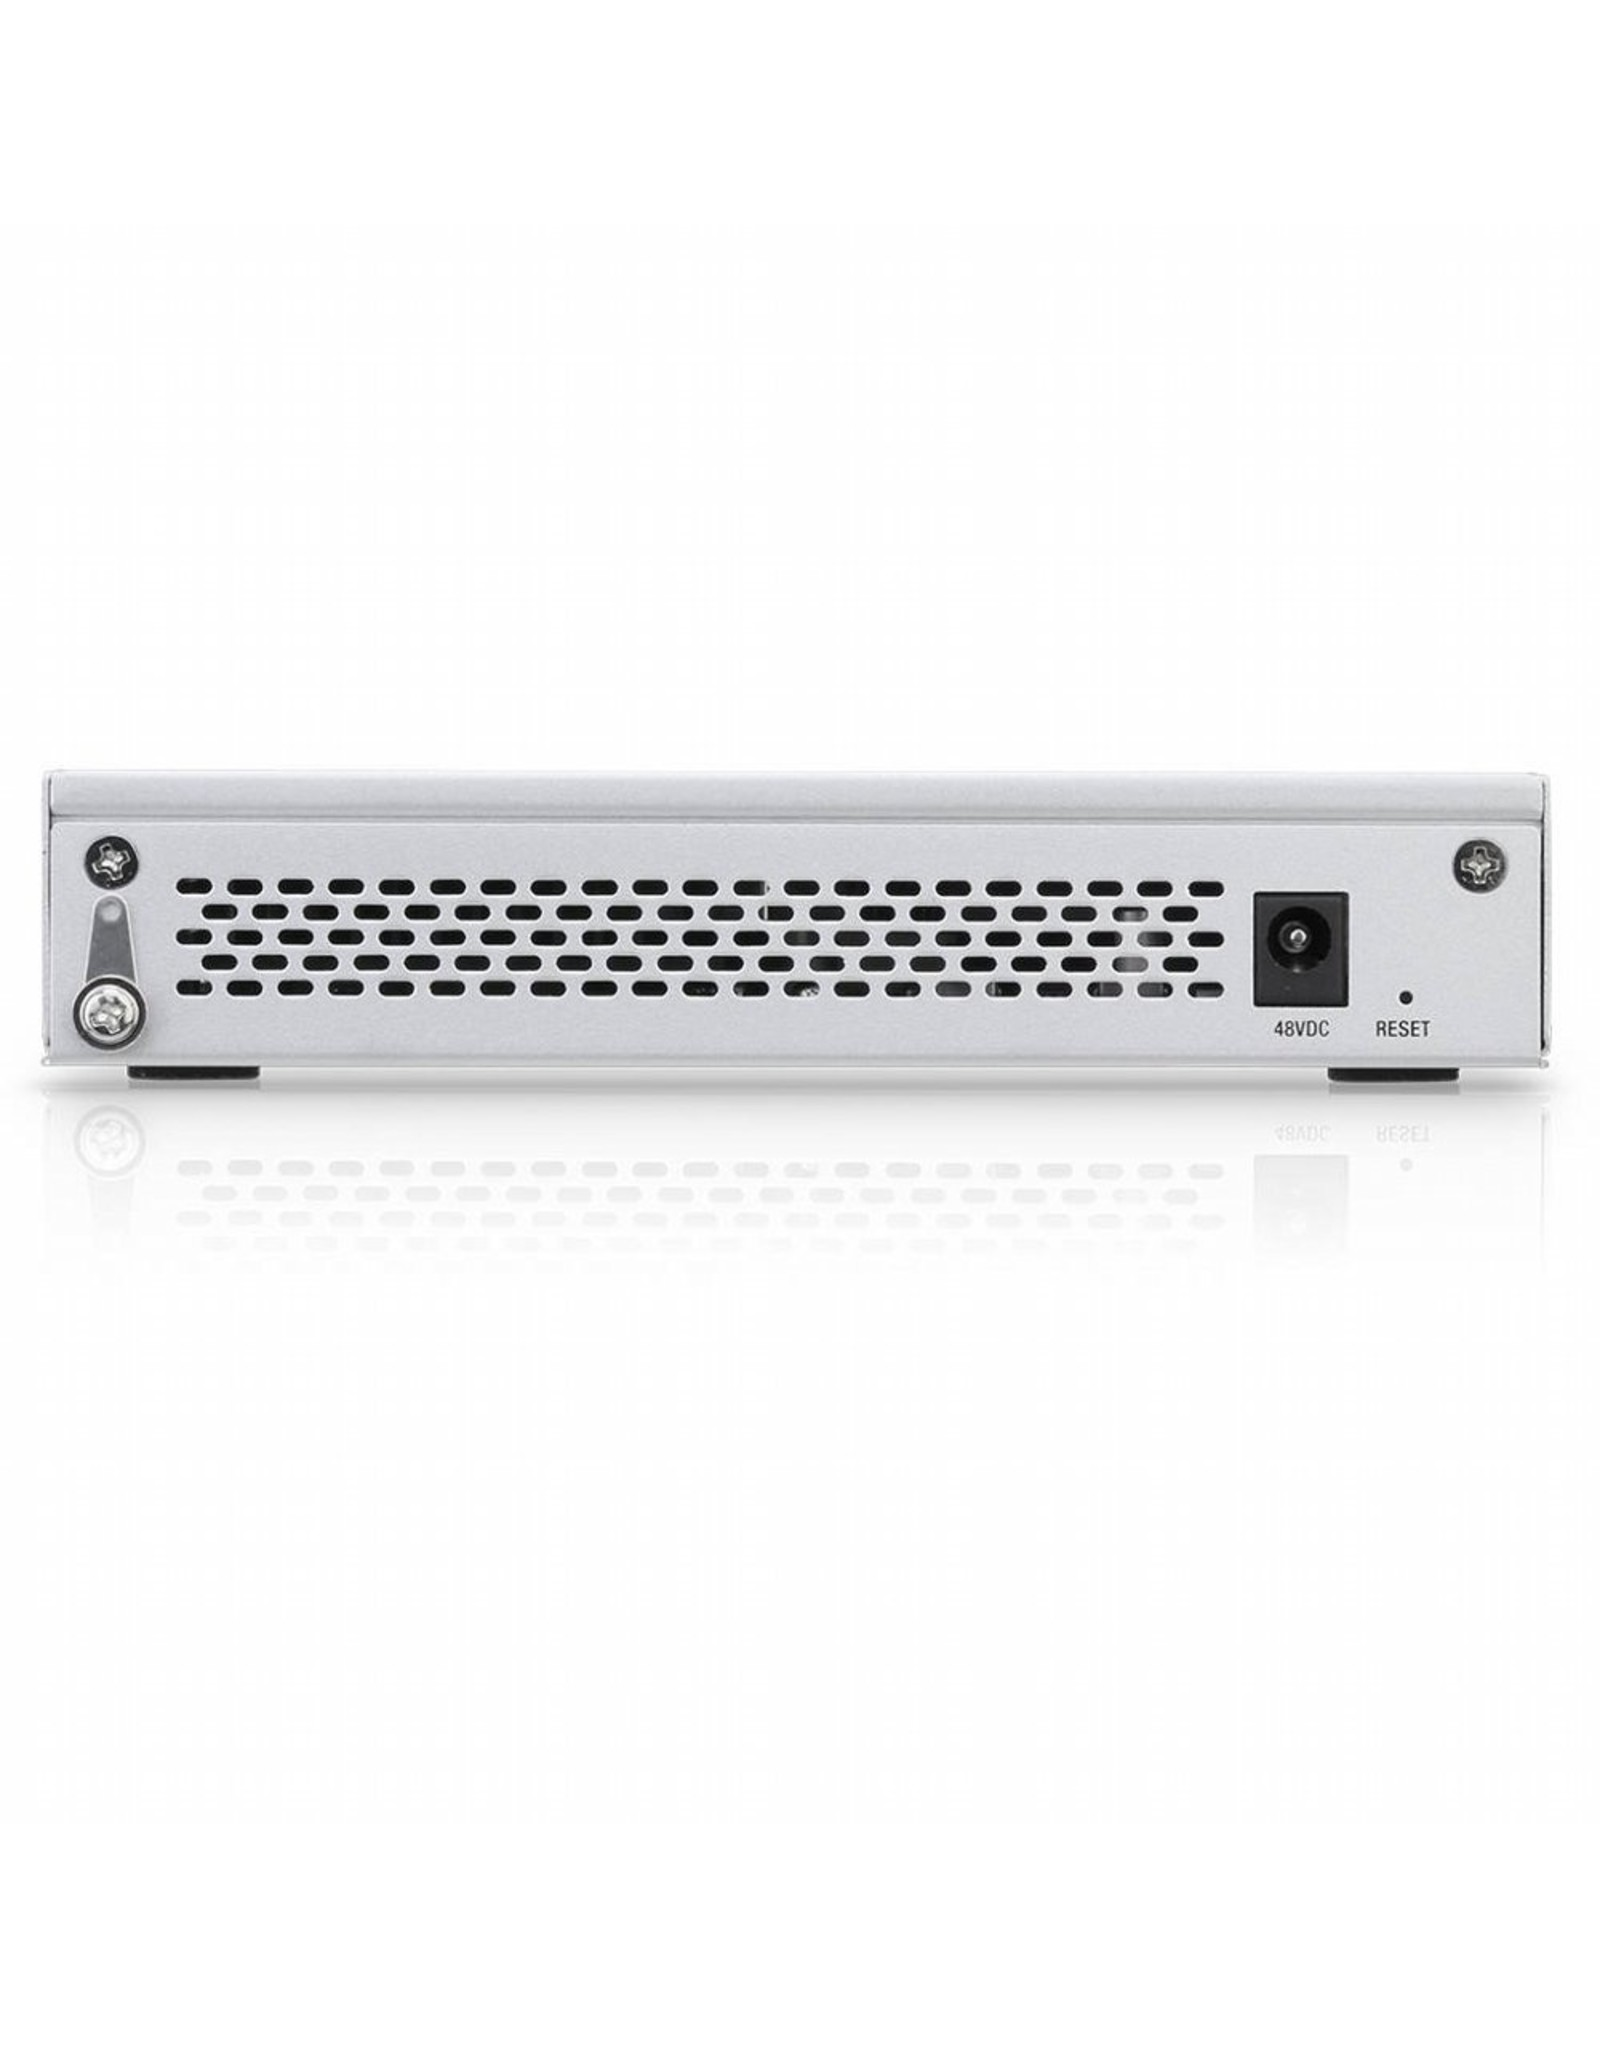 Ubiquiti Networks UniFi Switch8 Managed Gigabit Ethernet PoE